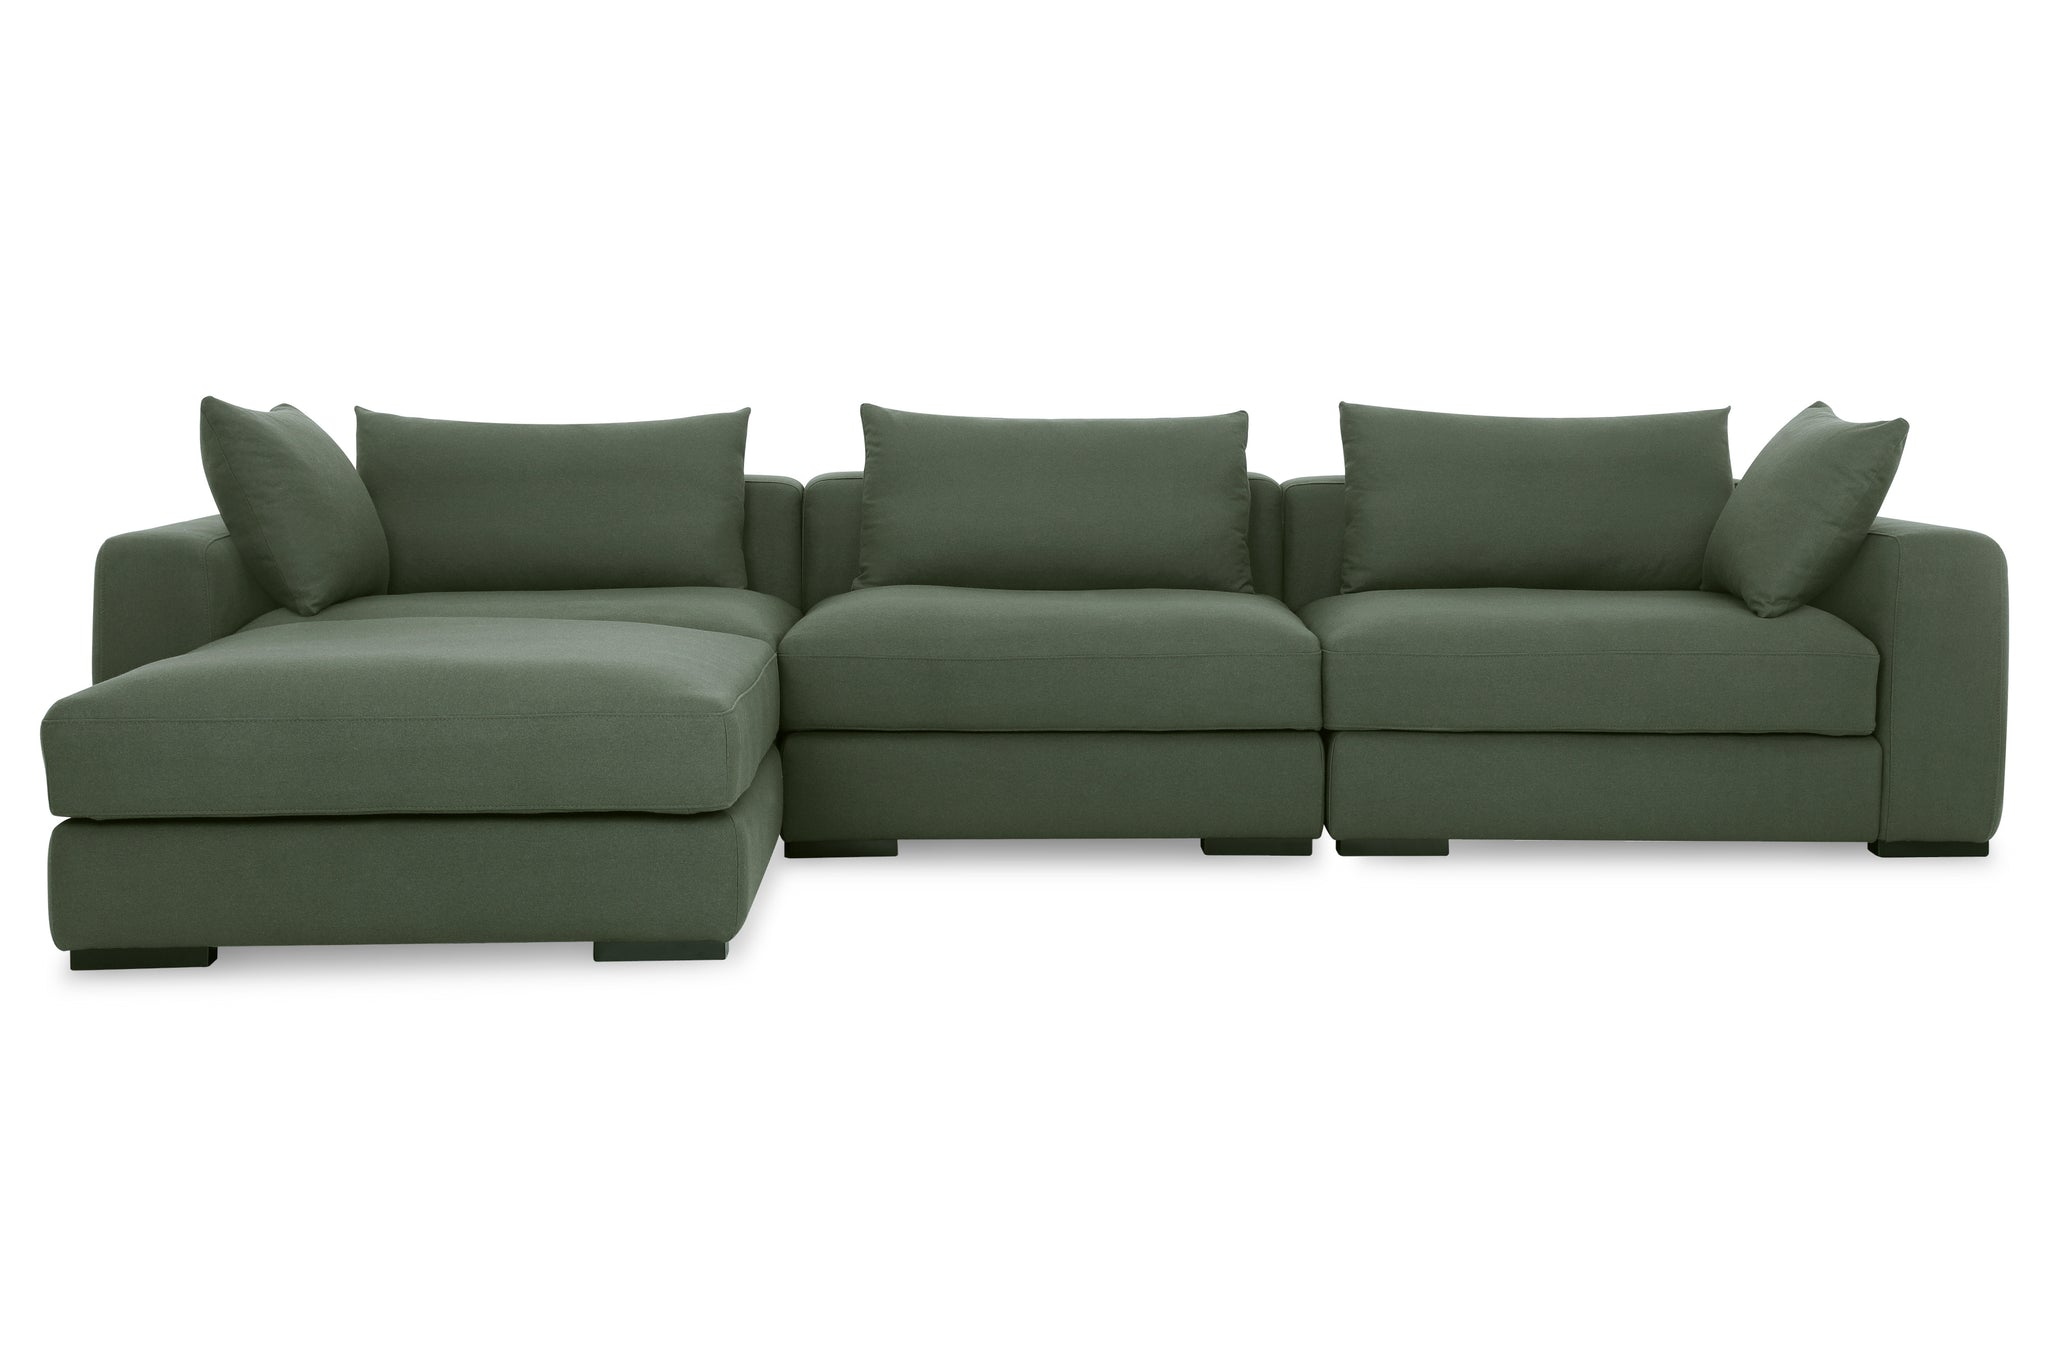 1038FRGRN,Remissa Sectional Sofa in Forest Green Felt